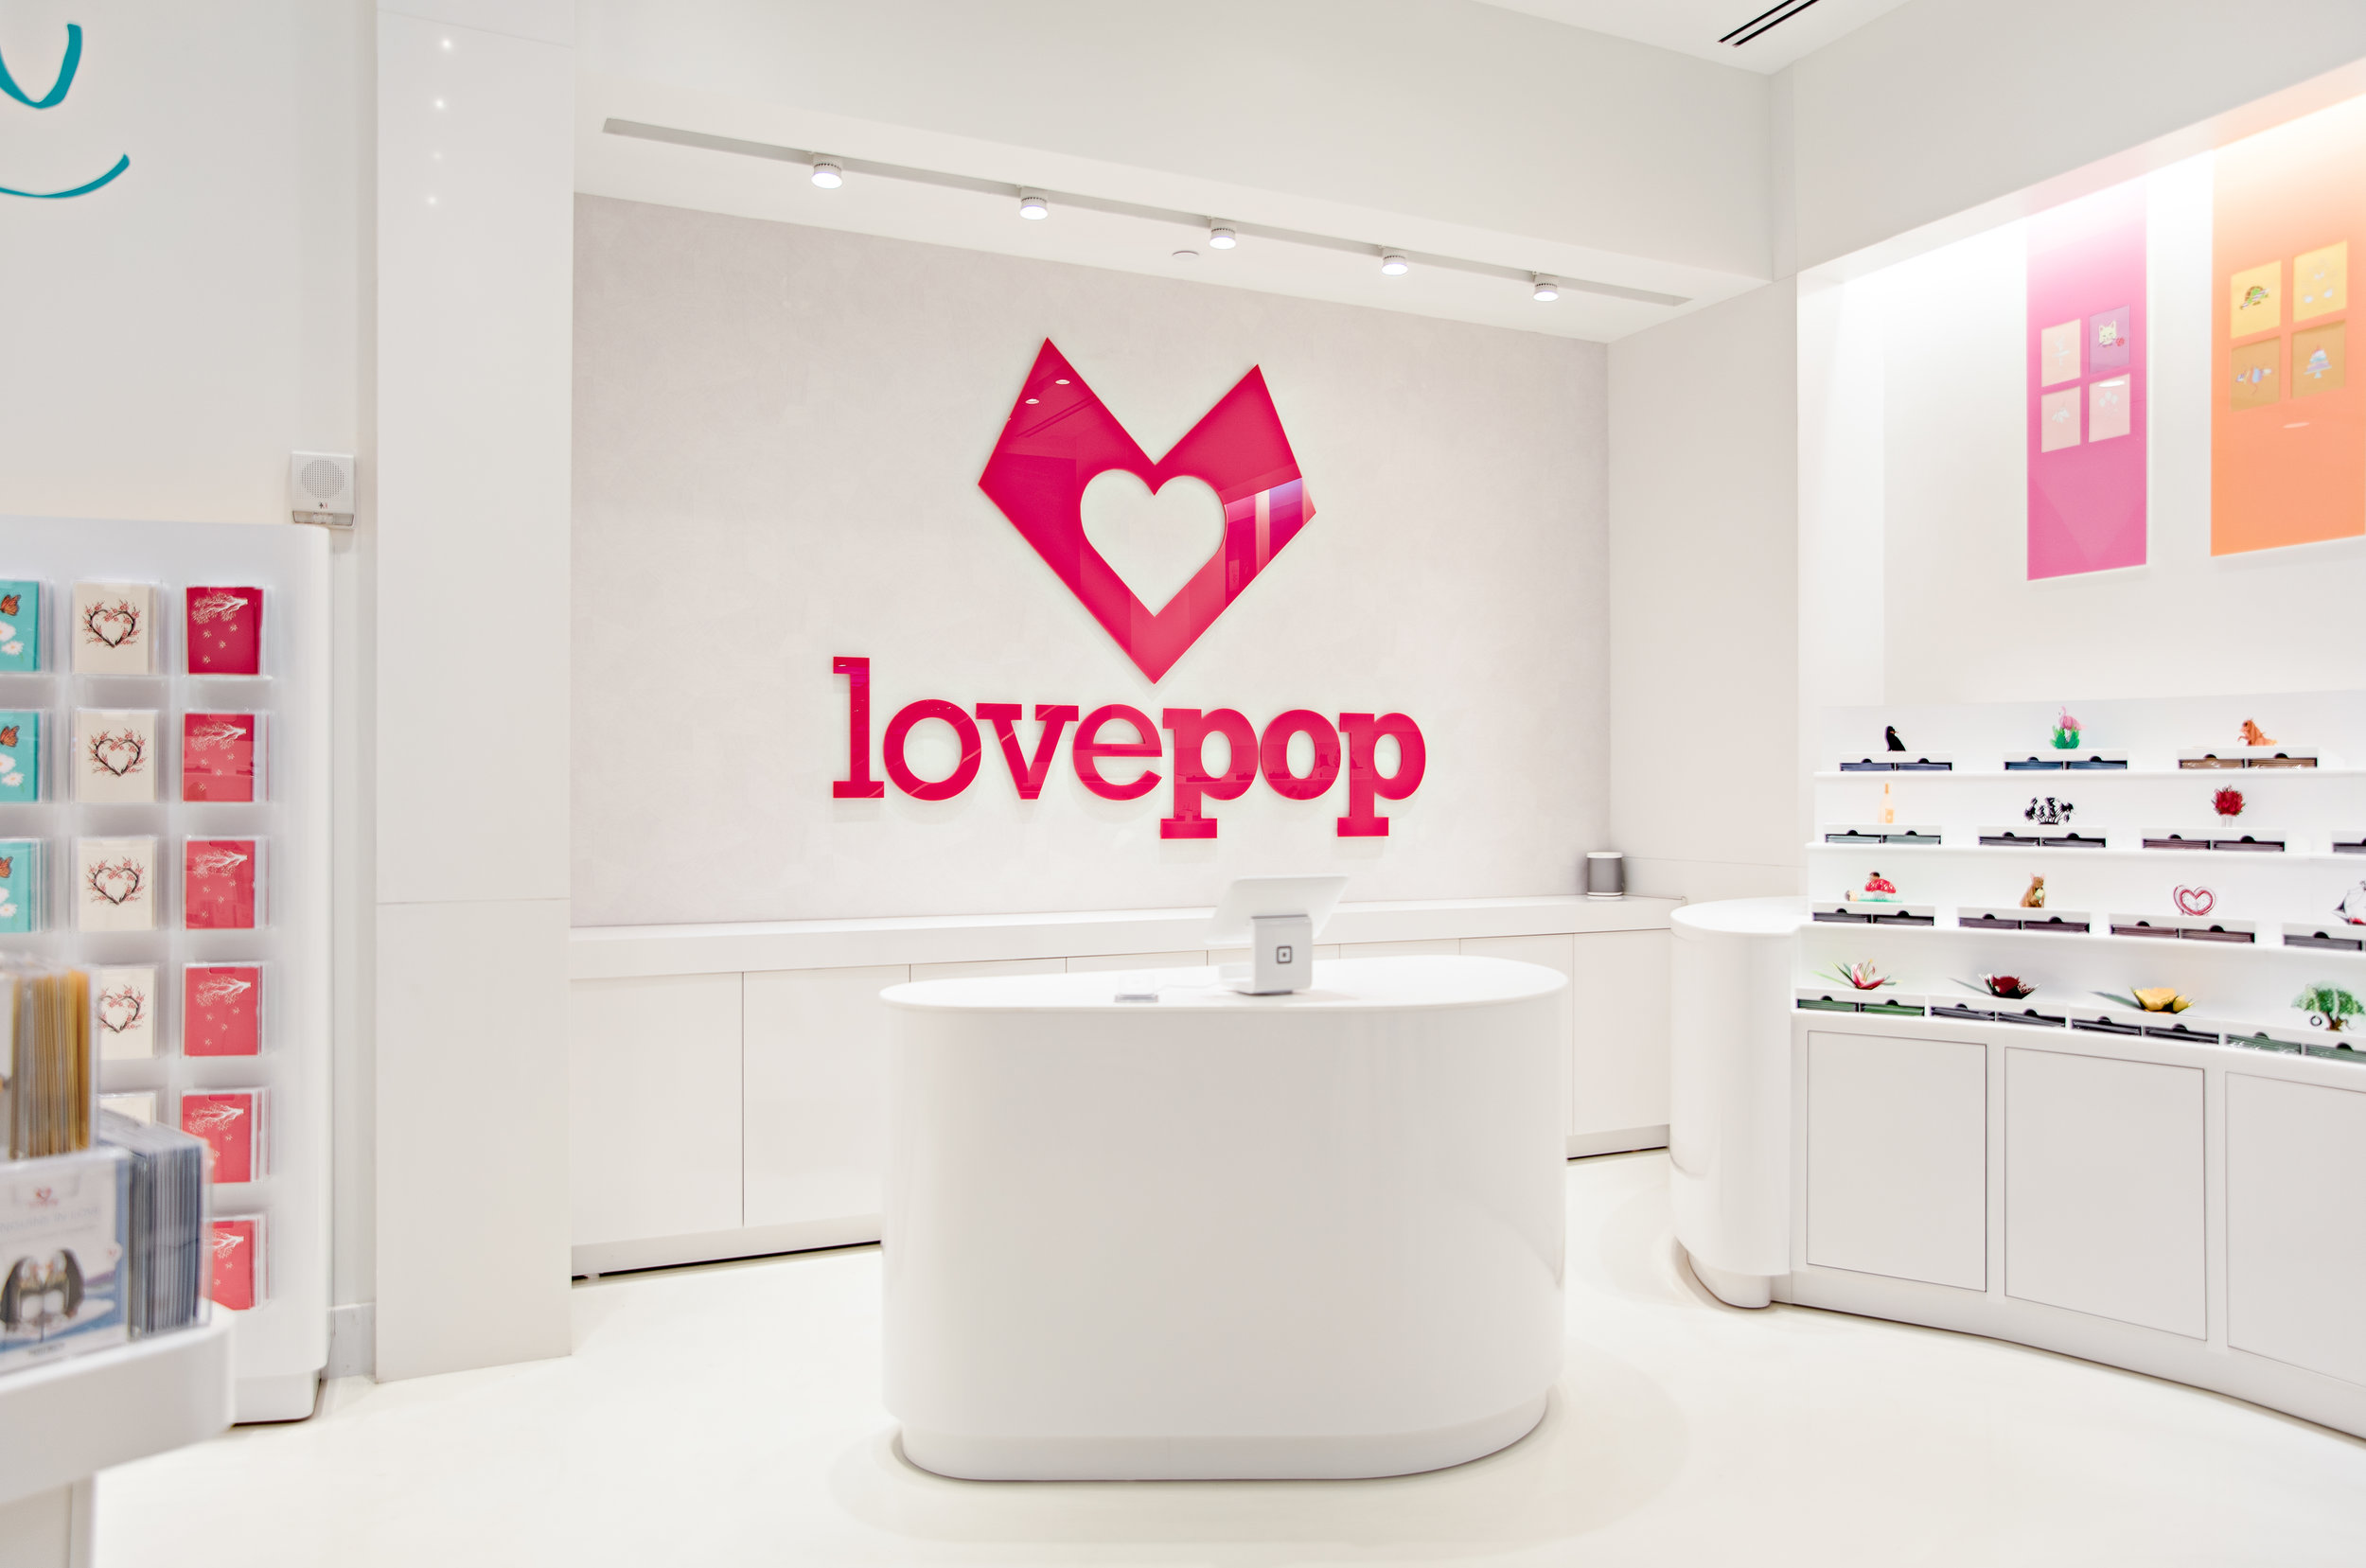 Lovepop Opens First Brick and Mortar Store